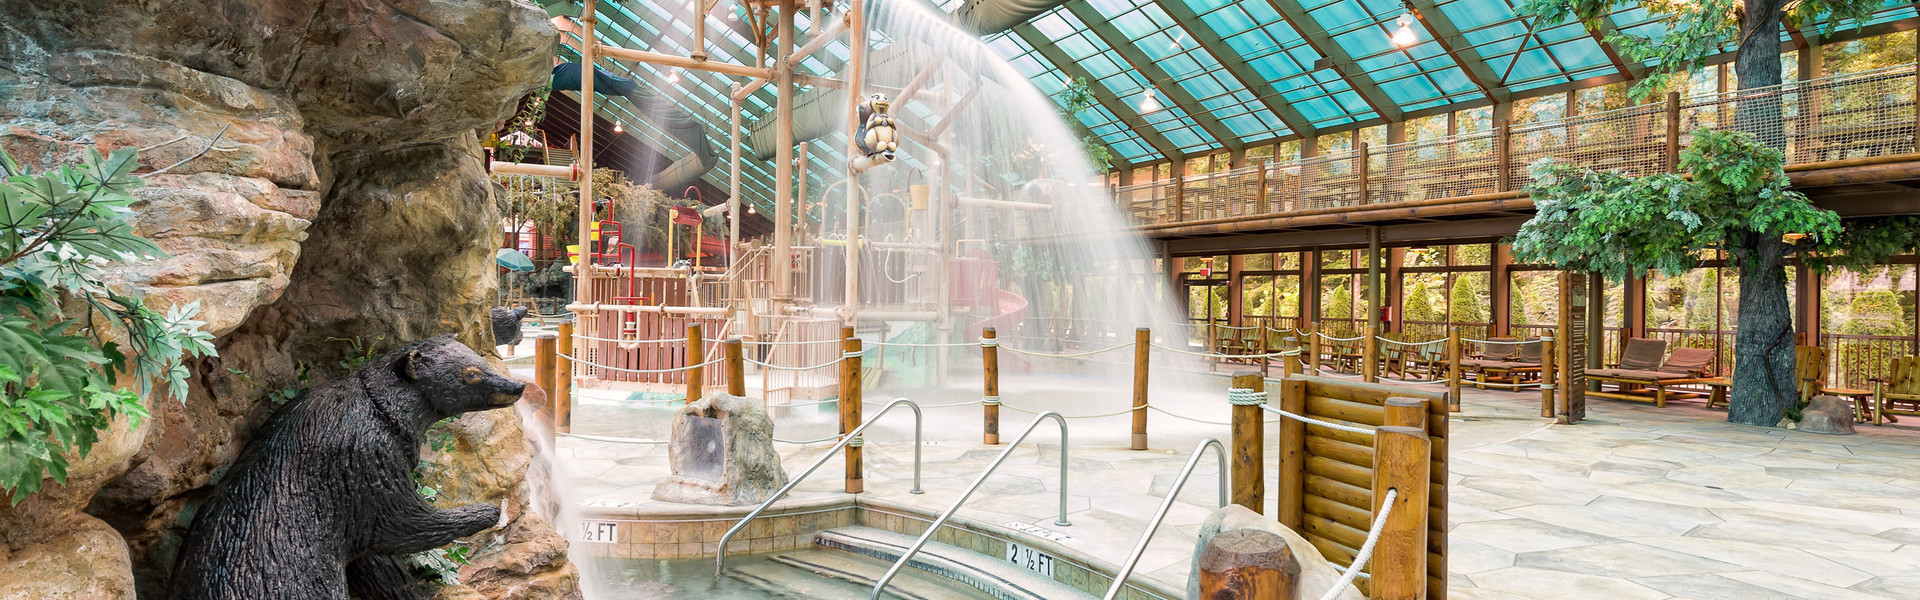 Inside our Indoor Waterpark Hotel in Gatlinburg | Menu For Wild Bear Falls Water Park | Westgate Smoky Mountain Resort & Spa